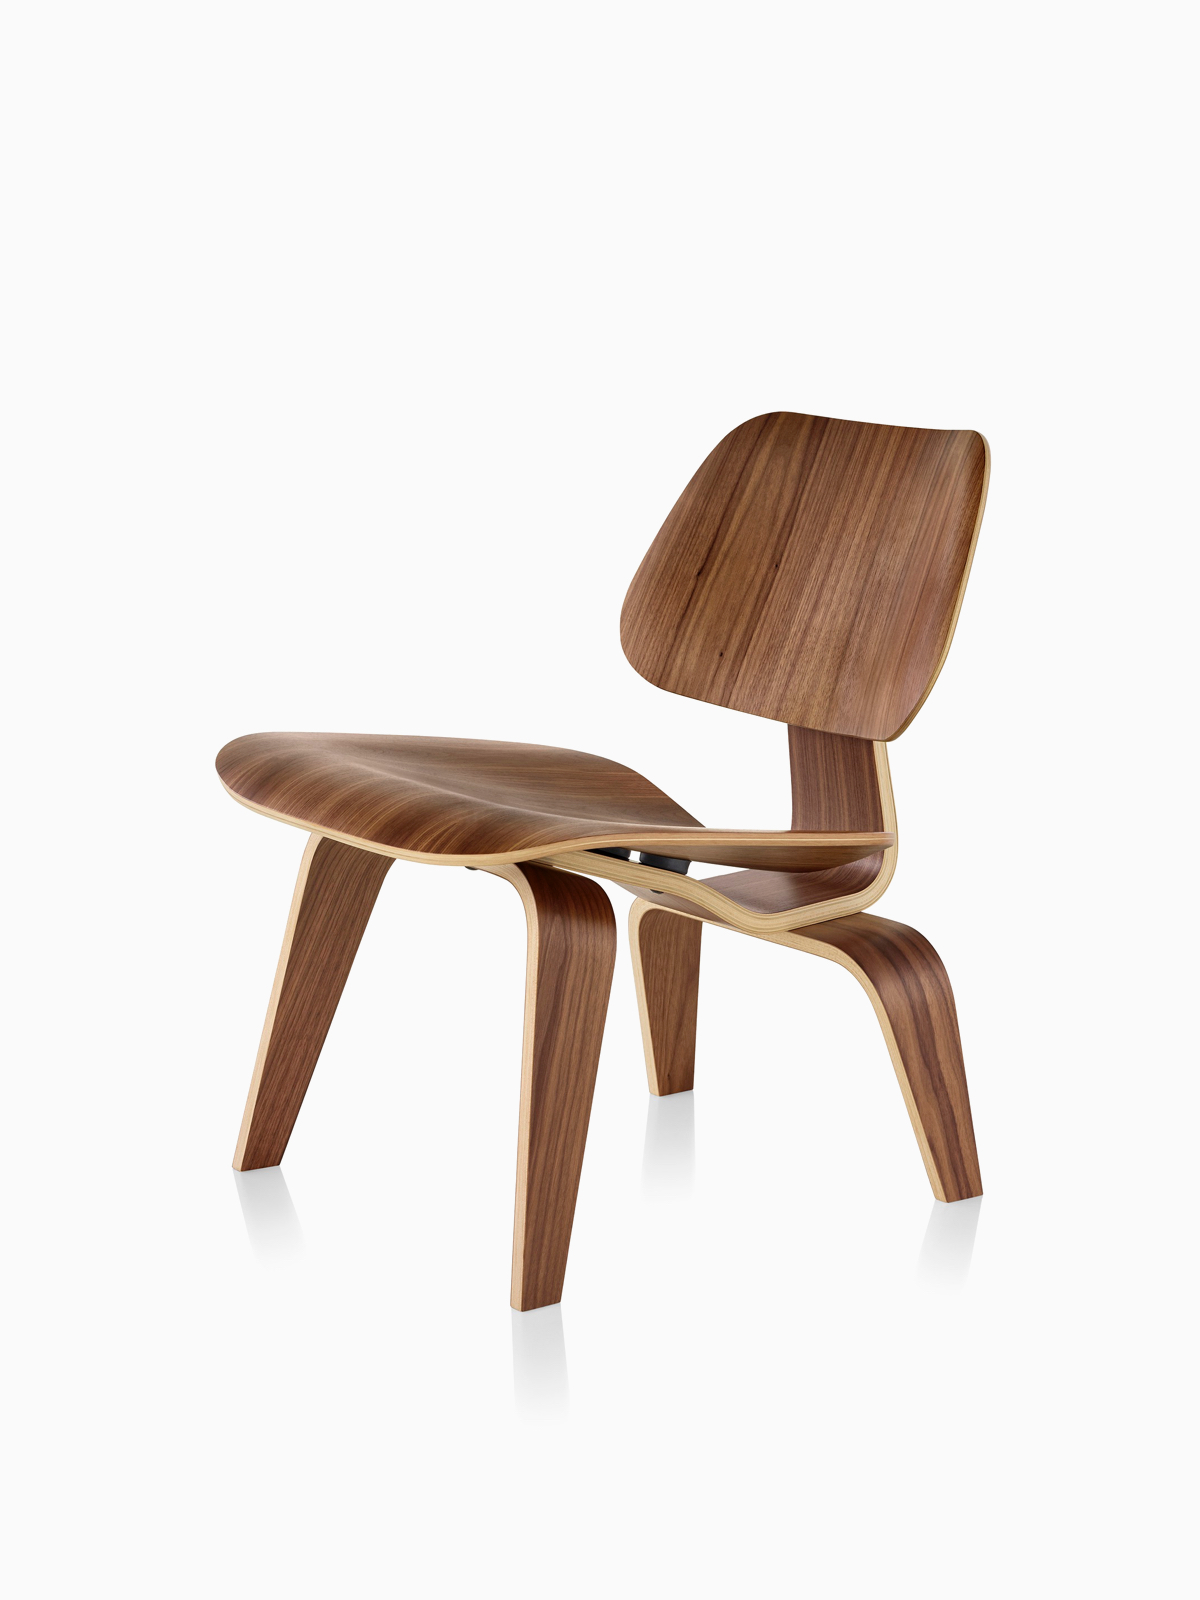 Eames Molded Plywood Chairs